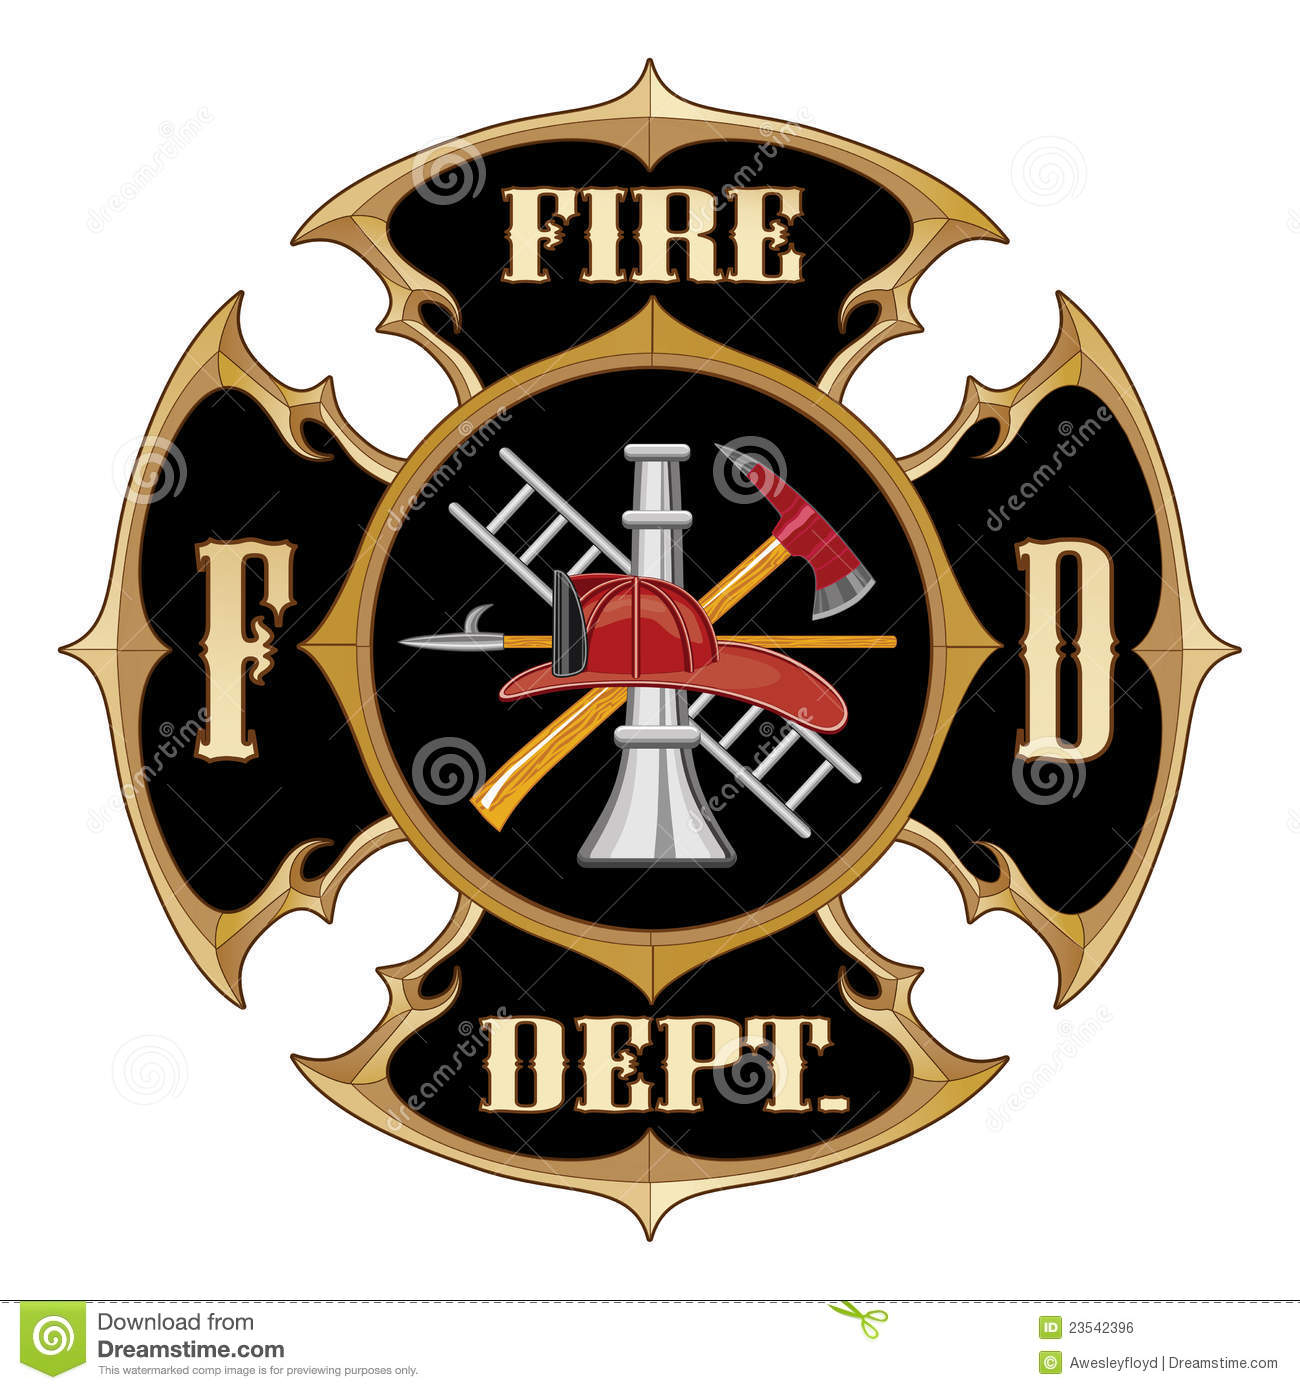 Fire Department Maltese Cross Stock Illustrations 143 Vectors Clipart